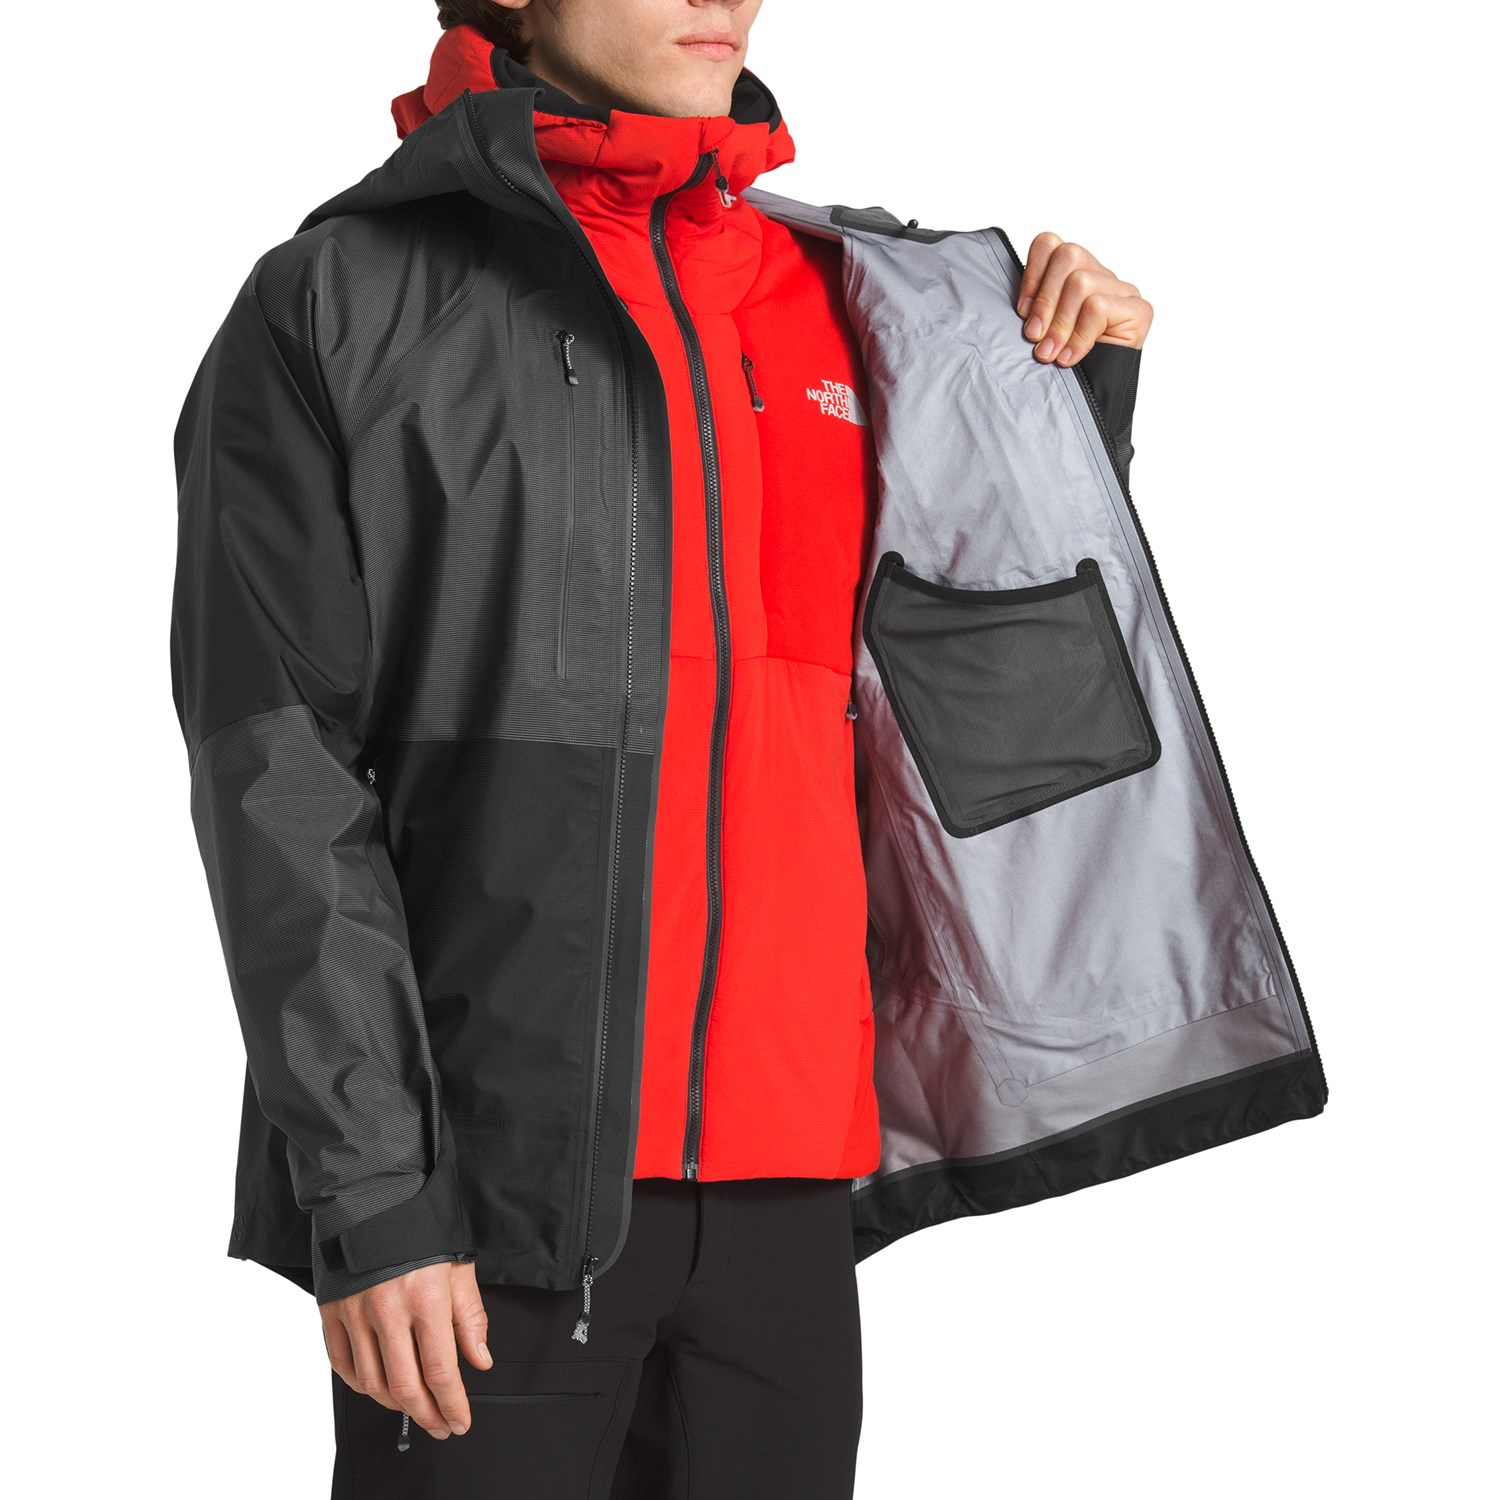 884b46e6bc7c The North Face Summit L5 FuseForm™ GORE-TEX C-Knit™ Jacket